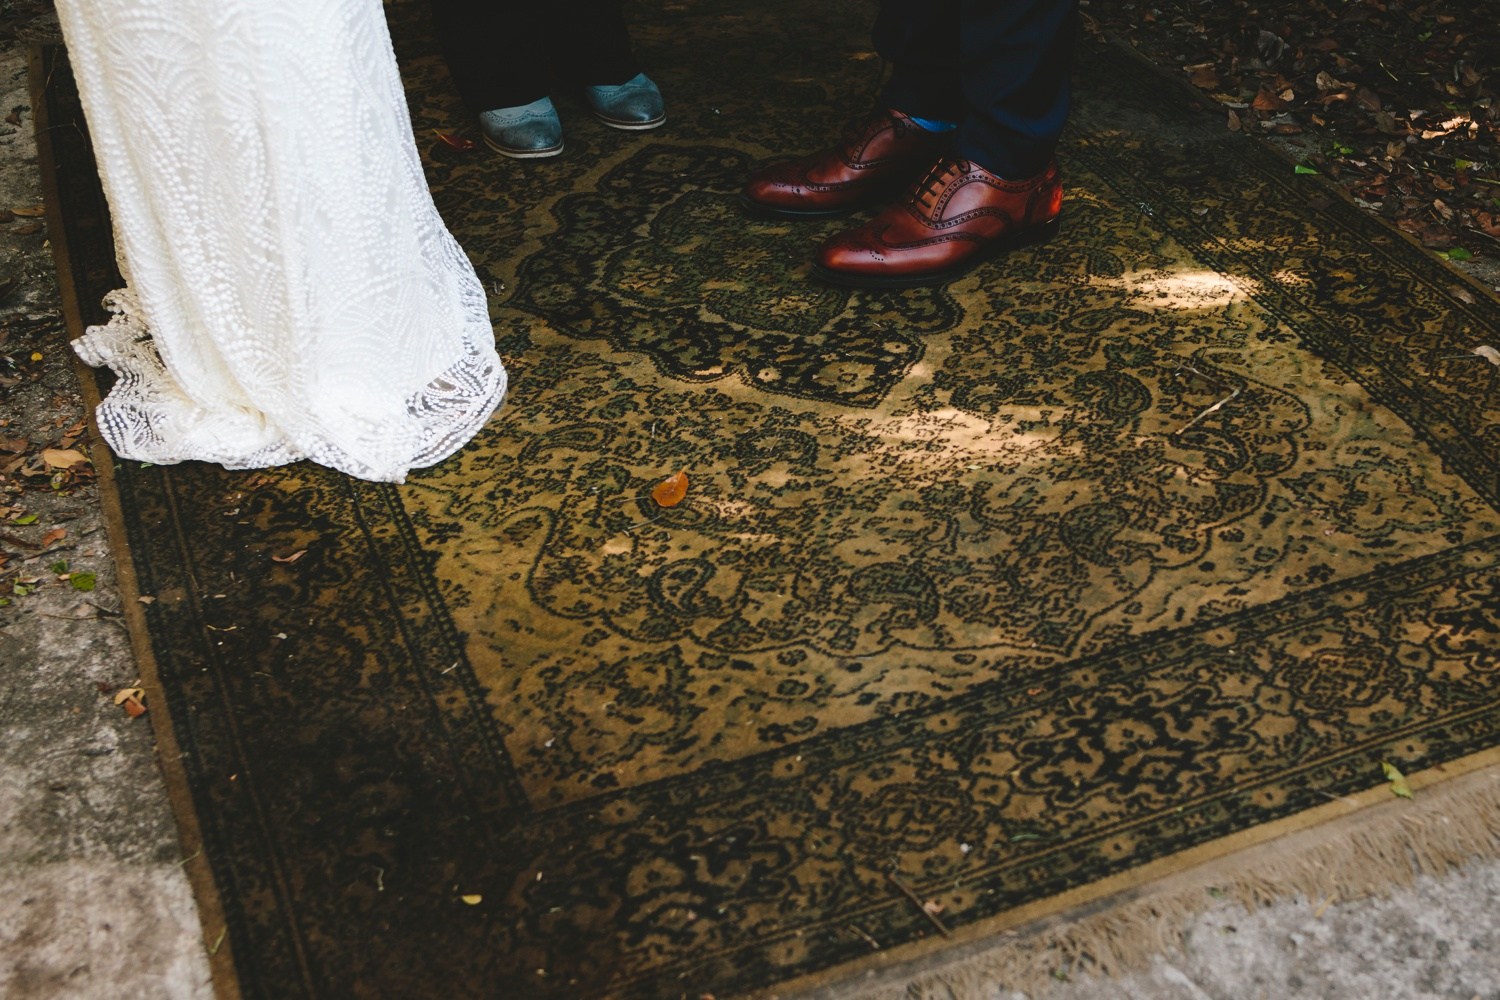 charlie_ray_photography_runaway_romance_elopement_emily_moon_plett_simple_boho_wedding_south_africa_bohemium_0061.jpg